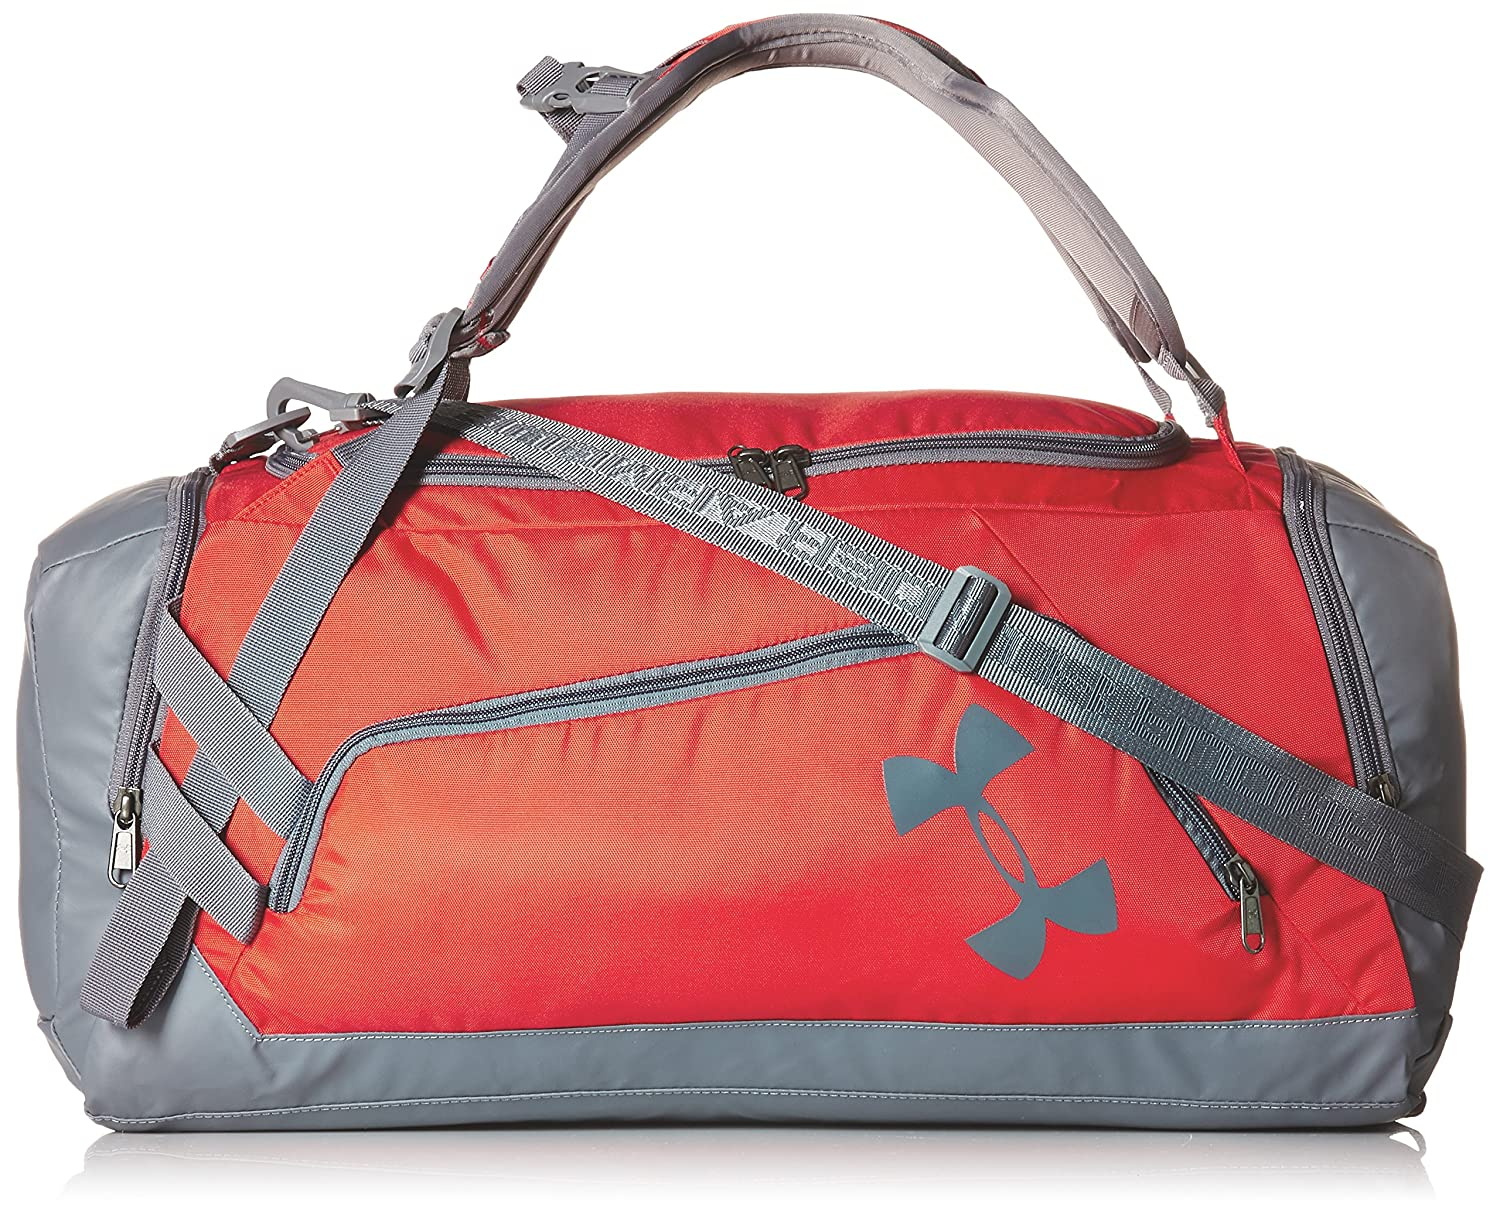 1683cec651 Under Armor Duffle Bag Amazon | Building Materials Bargain Center